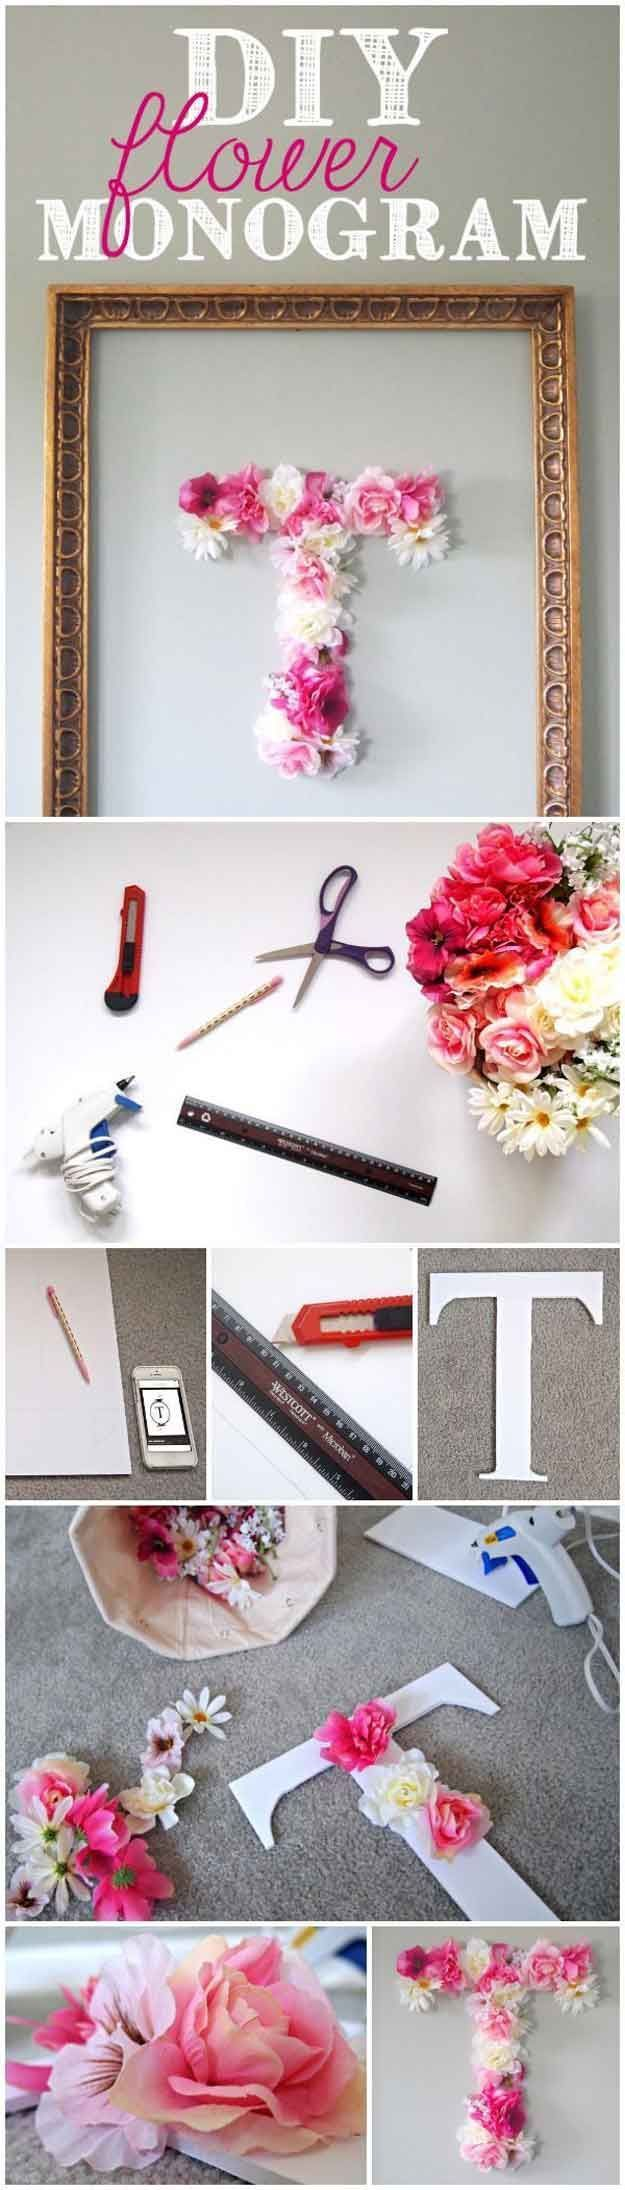 Beautiful Best 25+ Diy Projects For Bedroom Ideas On Pinterest | Diy Room  Organization, Diy Room Decor For College And Dorm Ideas Good Looking